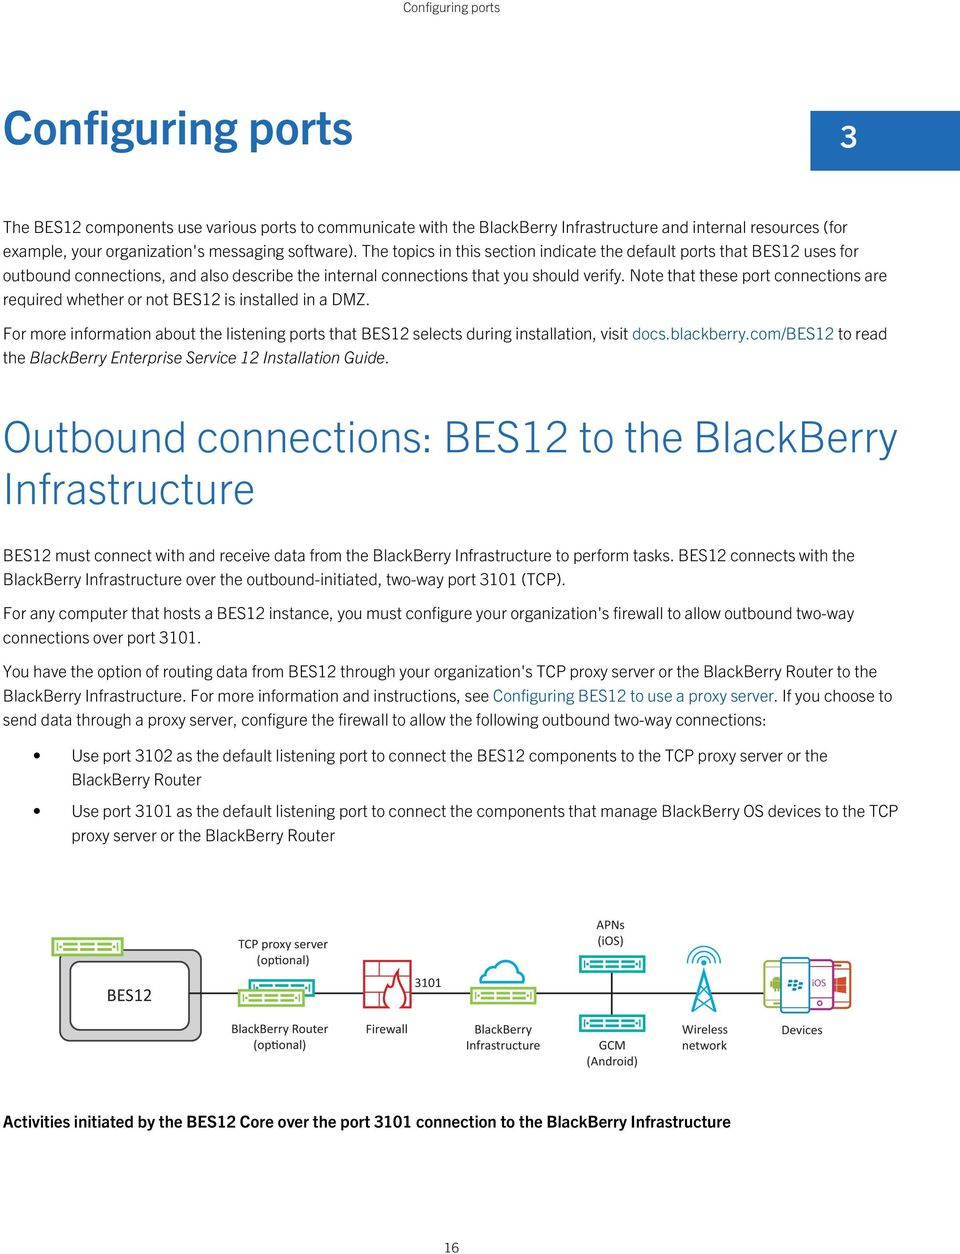 Note that these port connections are required whether or not BES12 is installed in a DMZ. For more information about the listening ports that BES12 selects during installation, visit docs.blackberry.